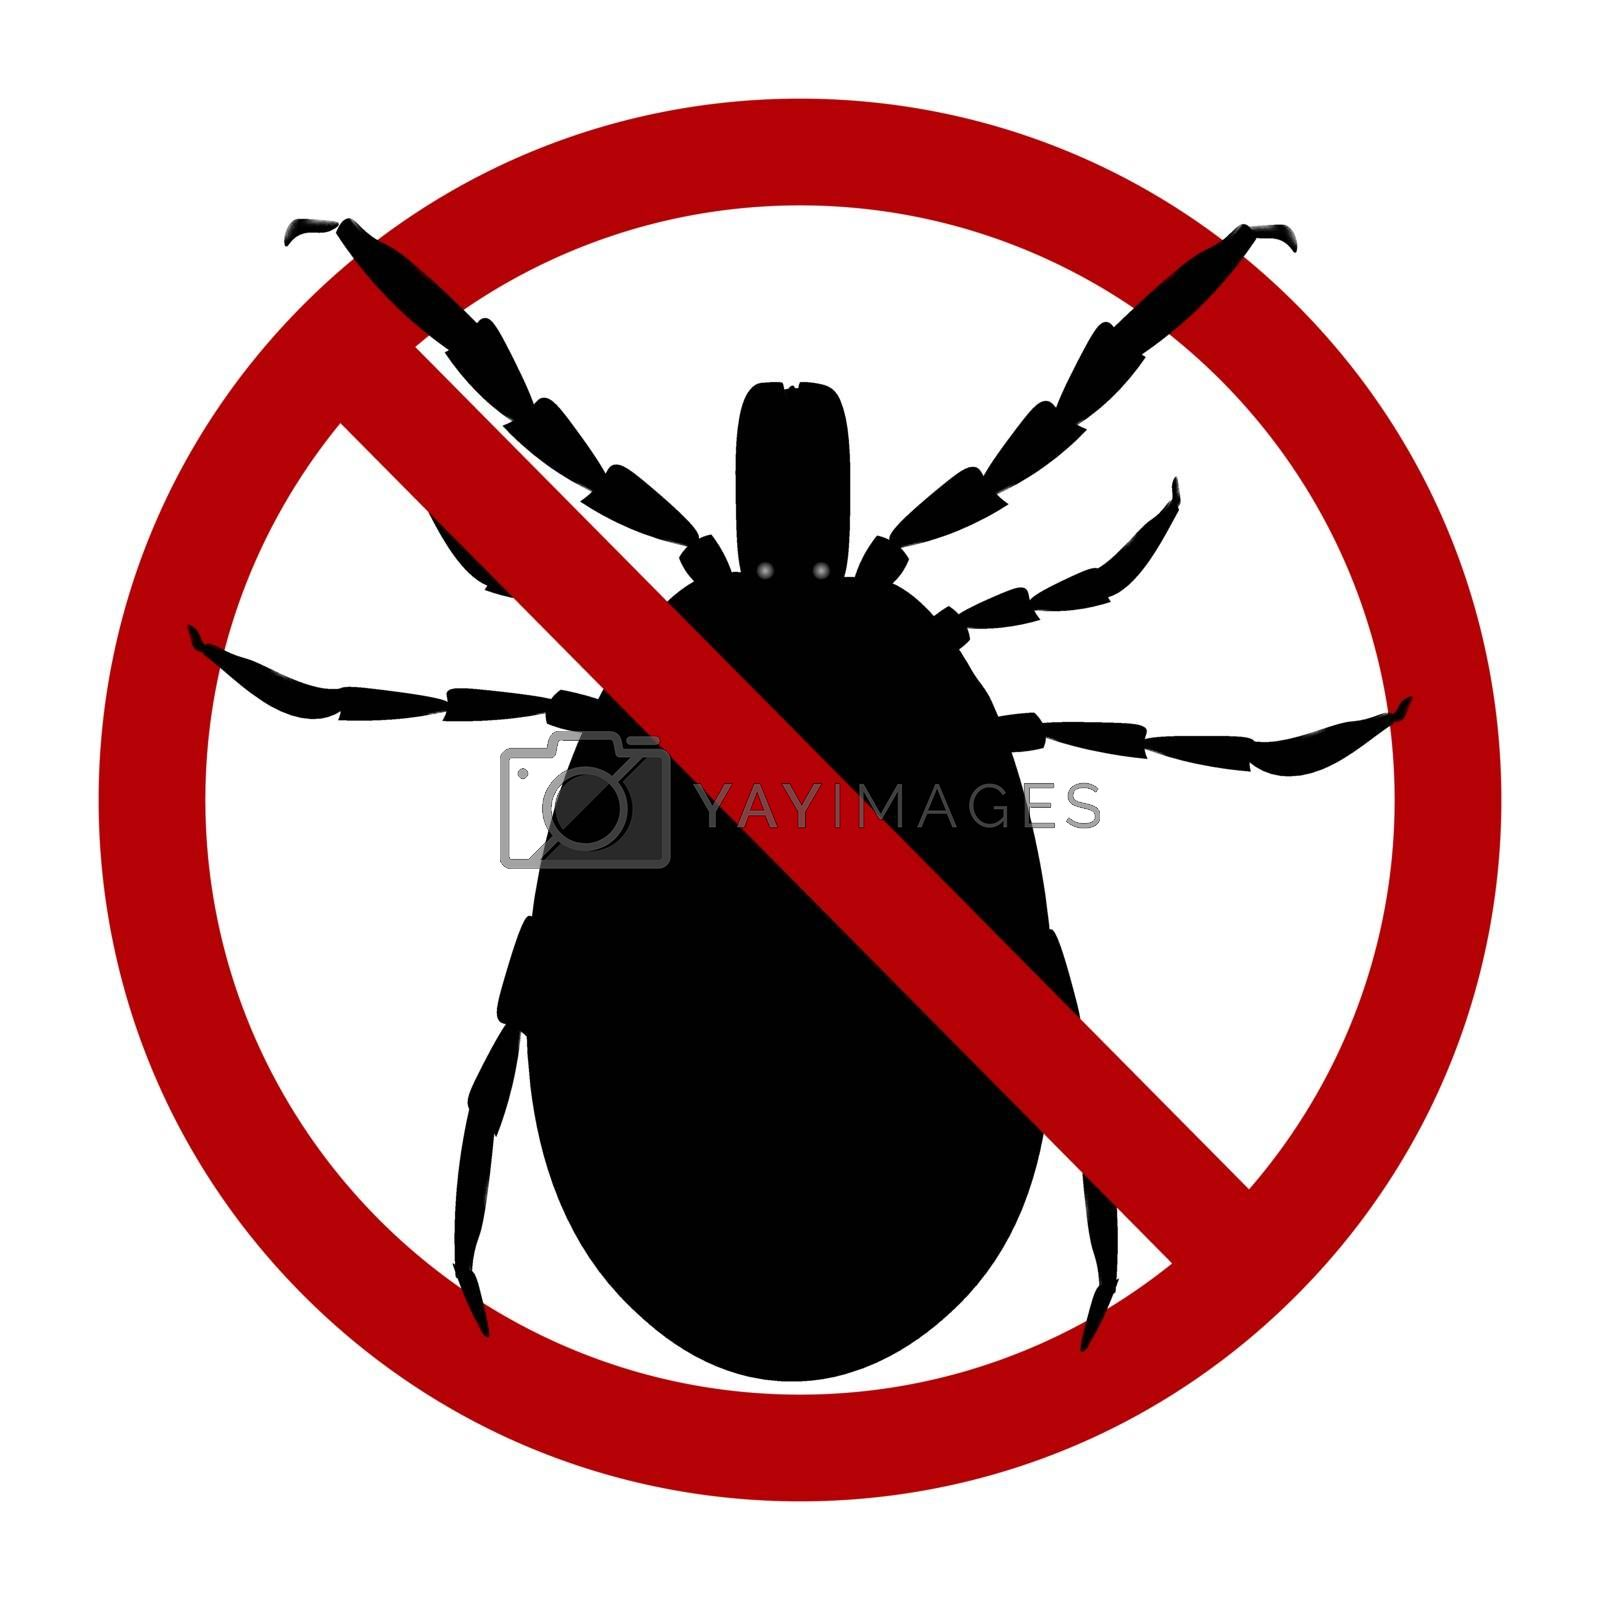 Warning sign. harvest bug in a red circle. Vector illustration